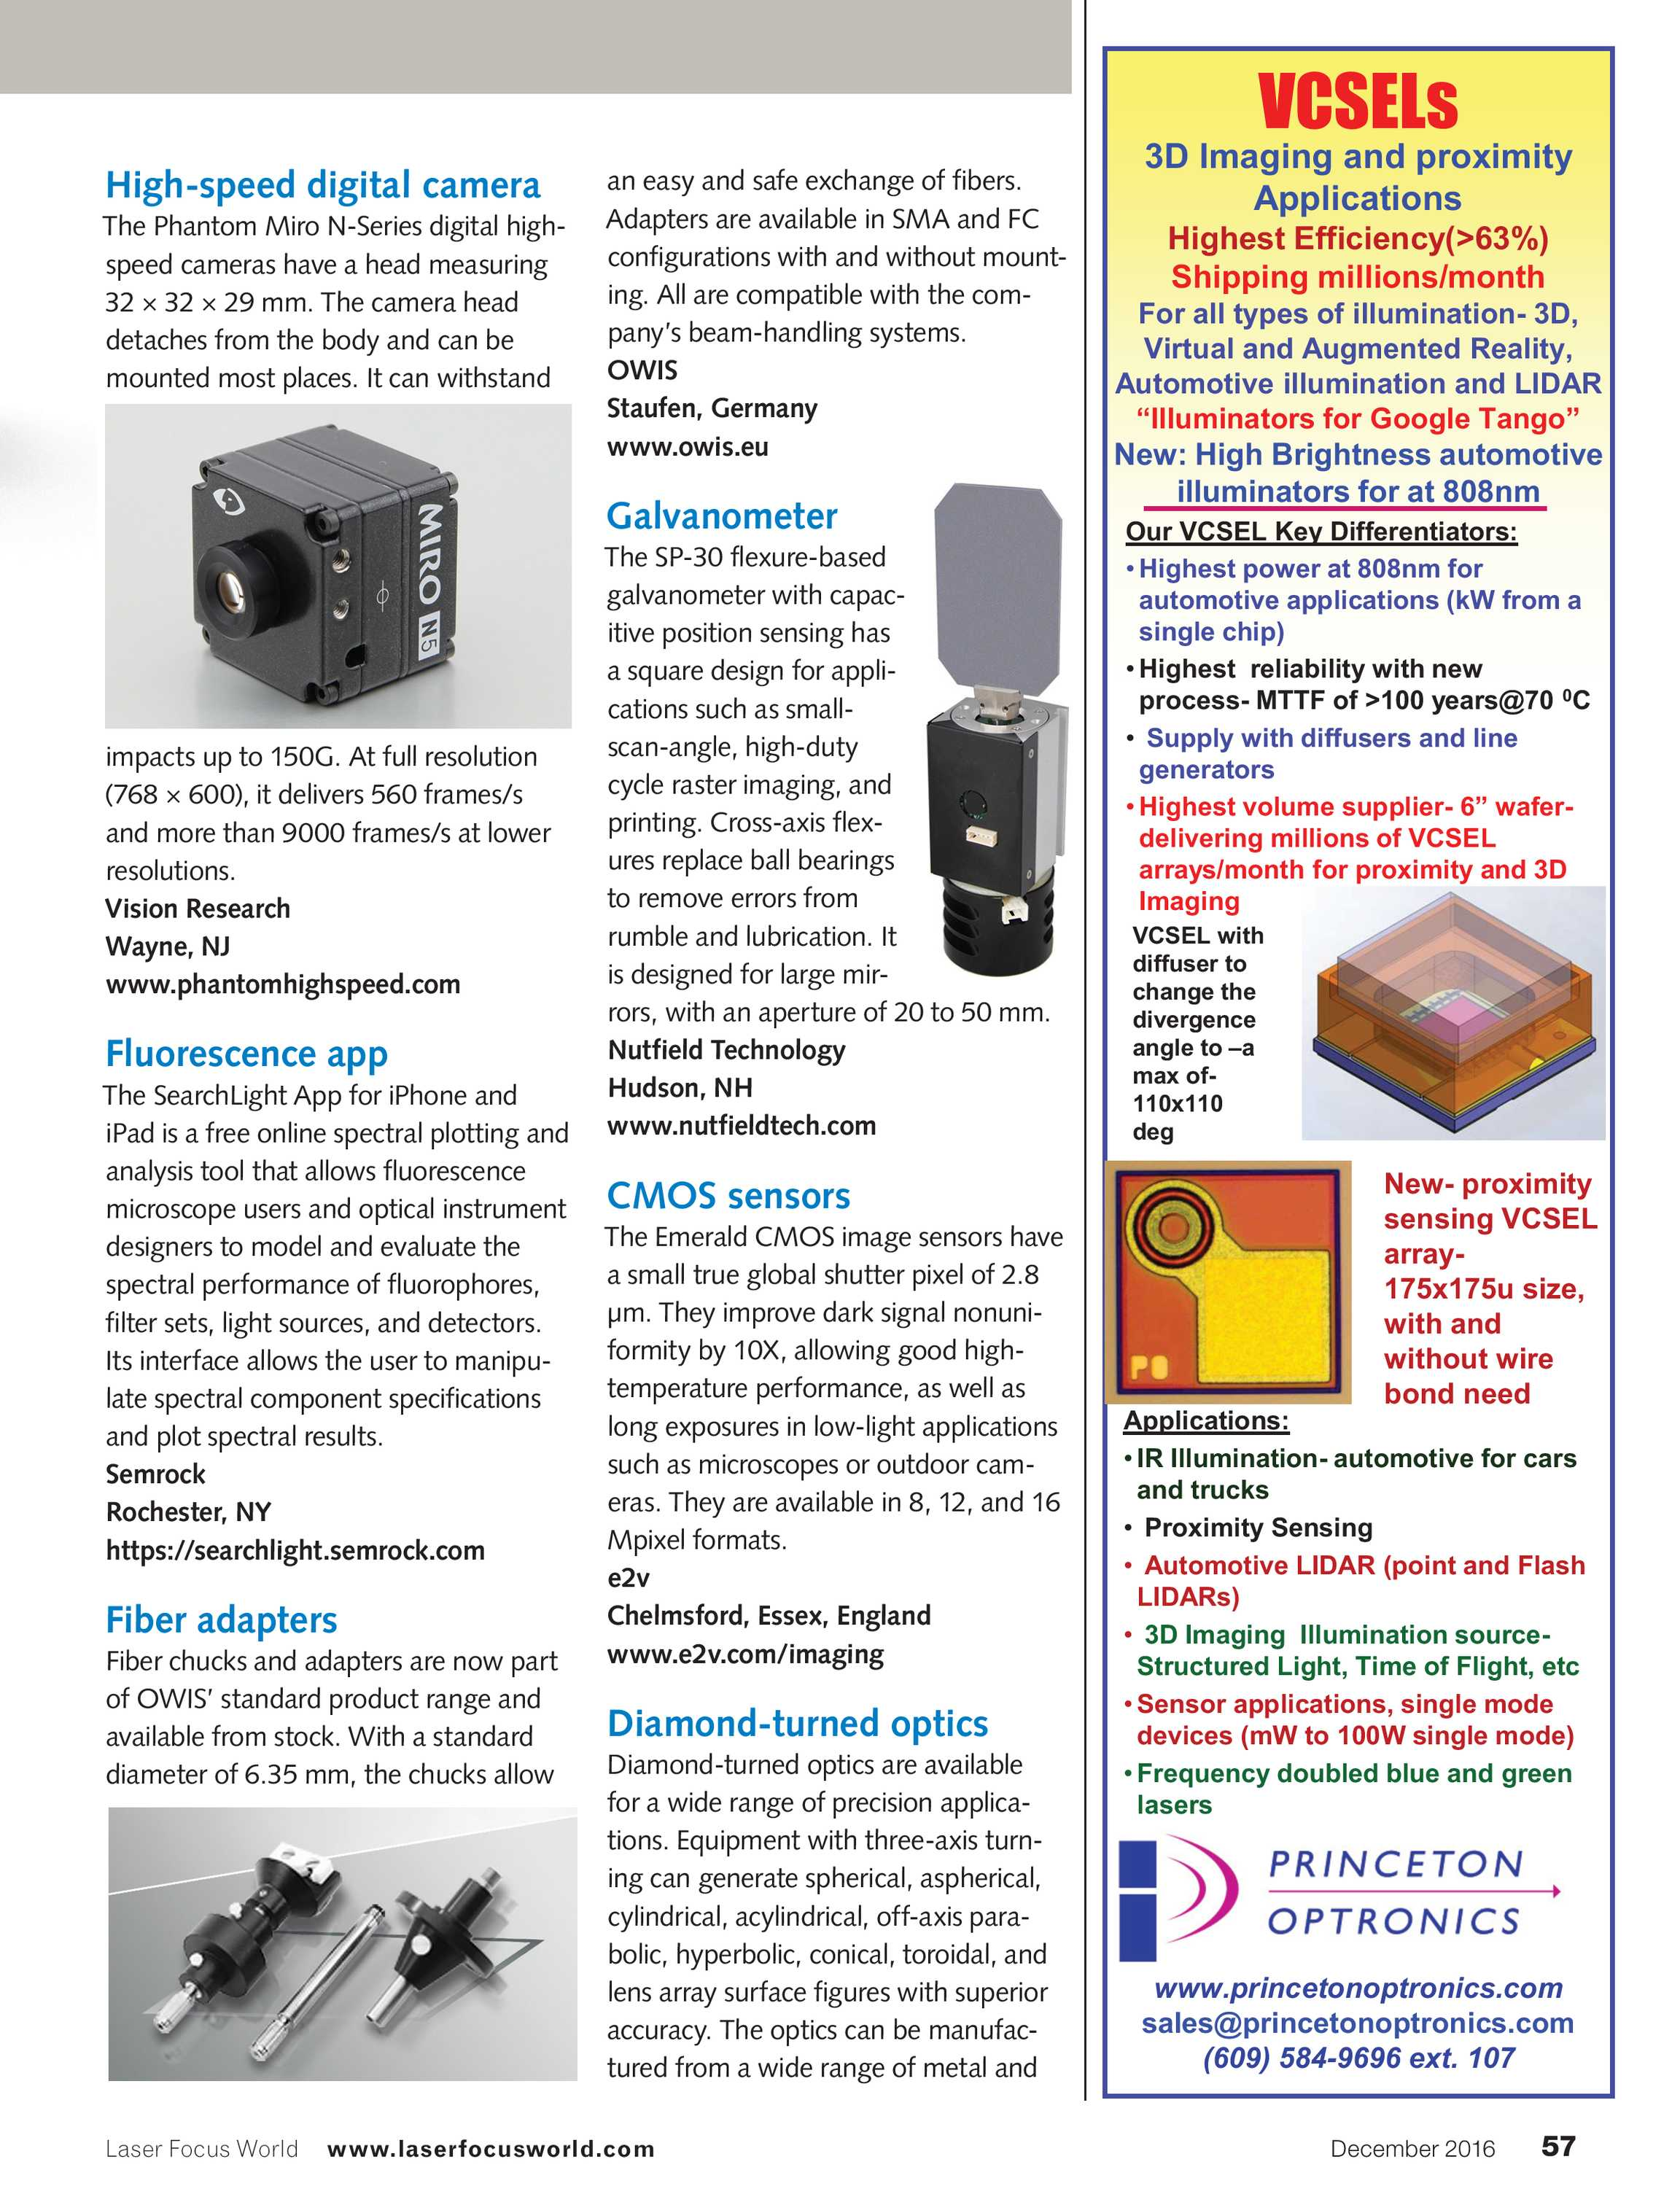 Laser Focus World - December 2016 - page 57